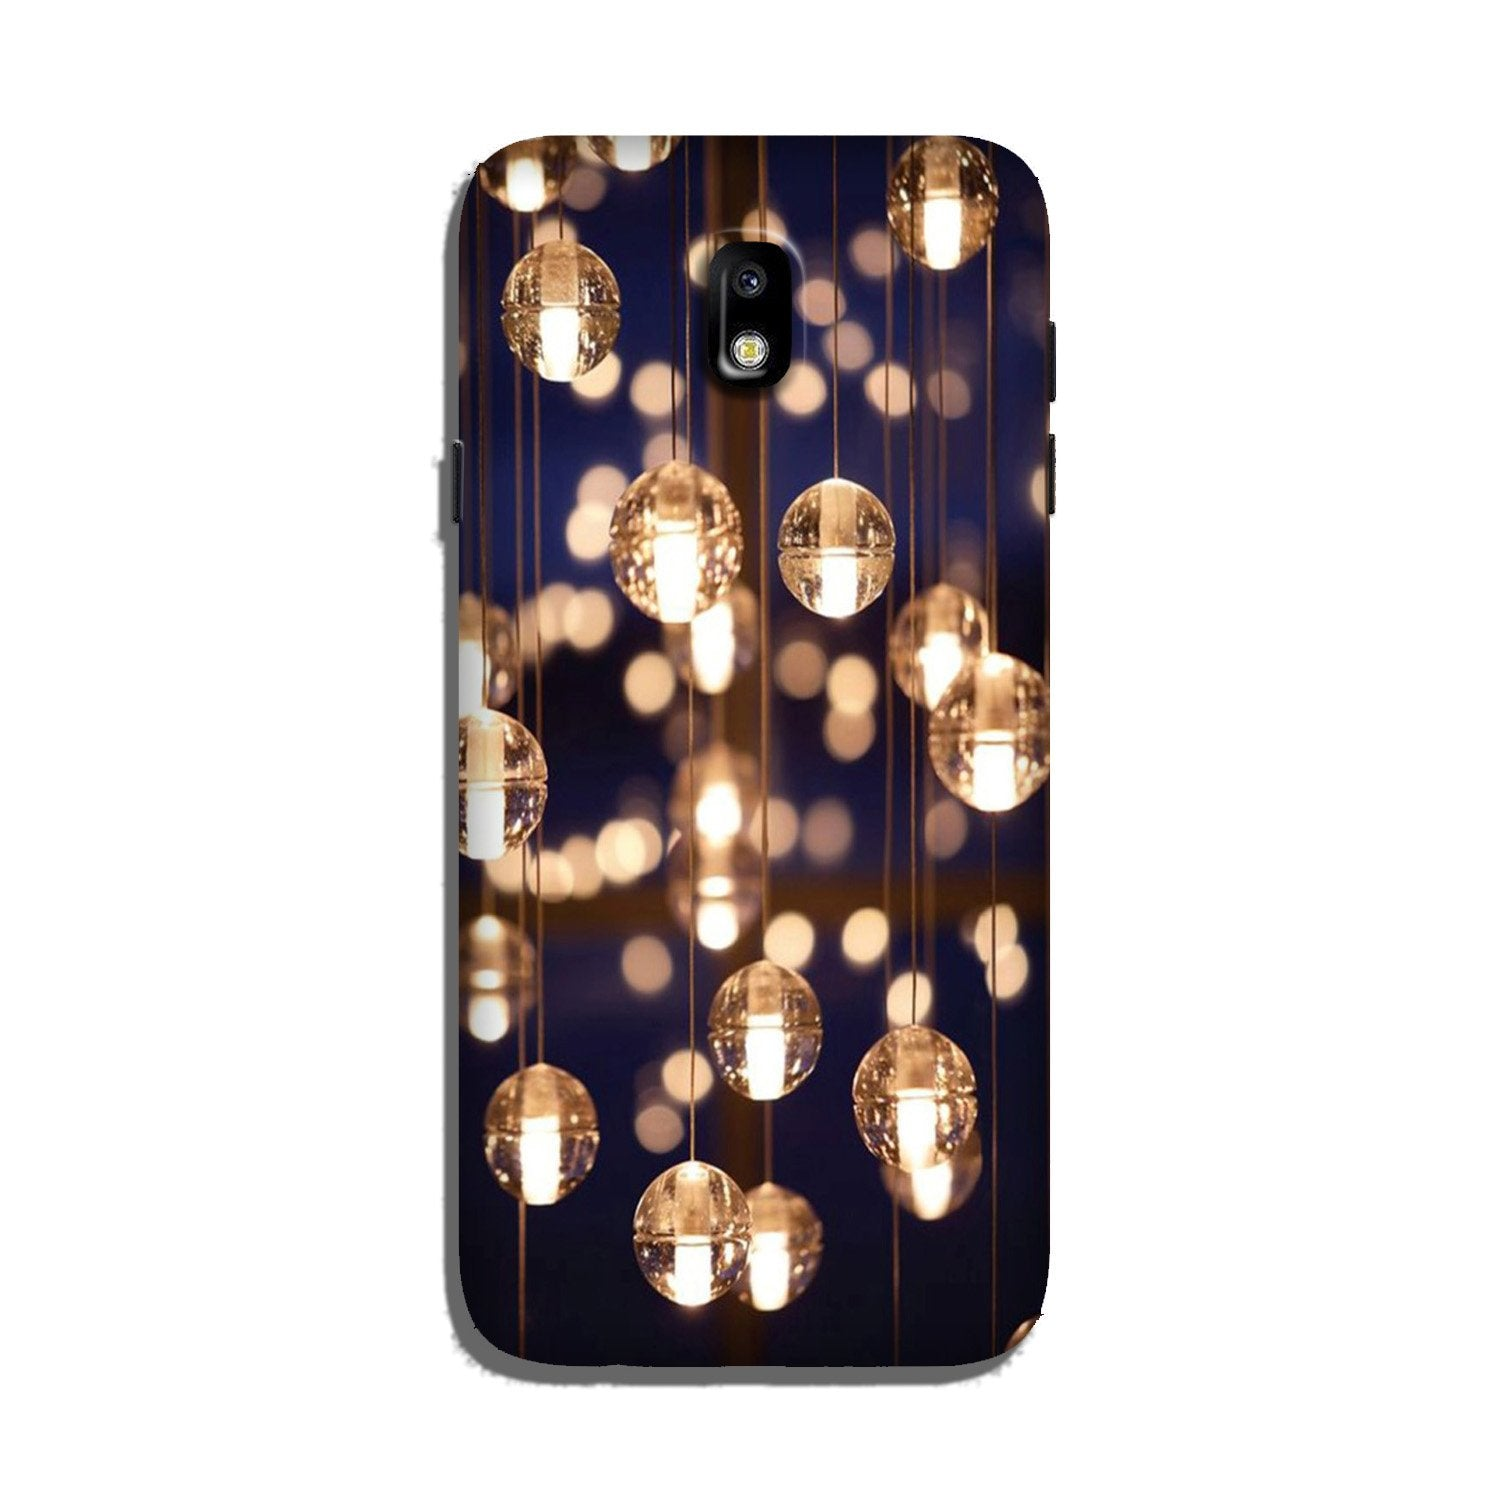 Party Bulb2 Case for Galaxy J3 Pro